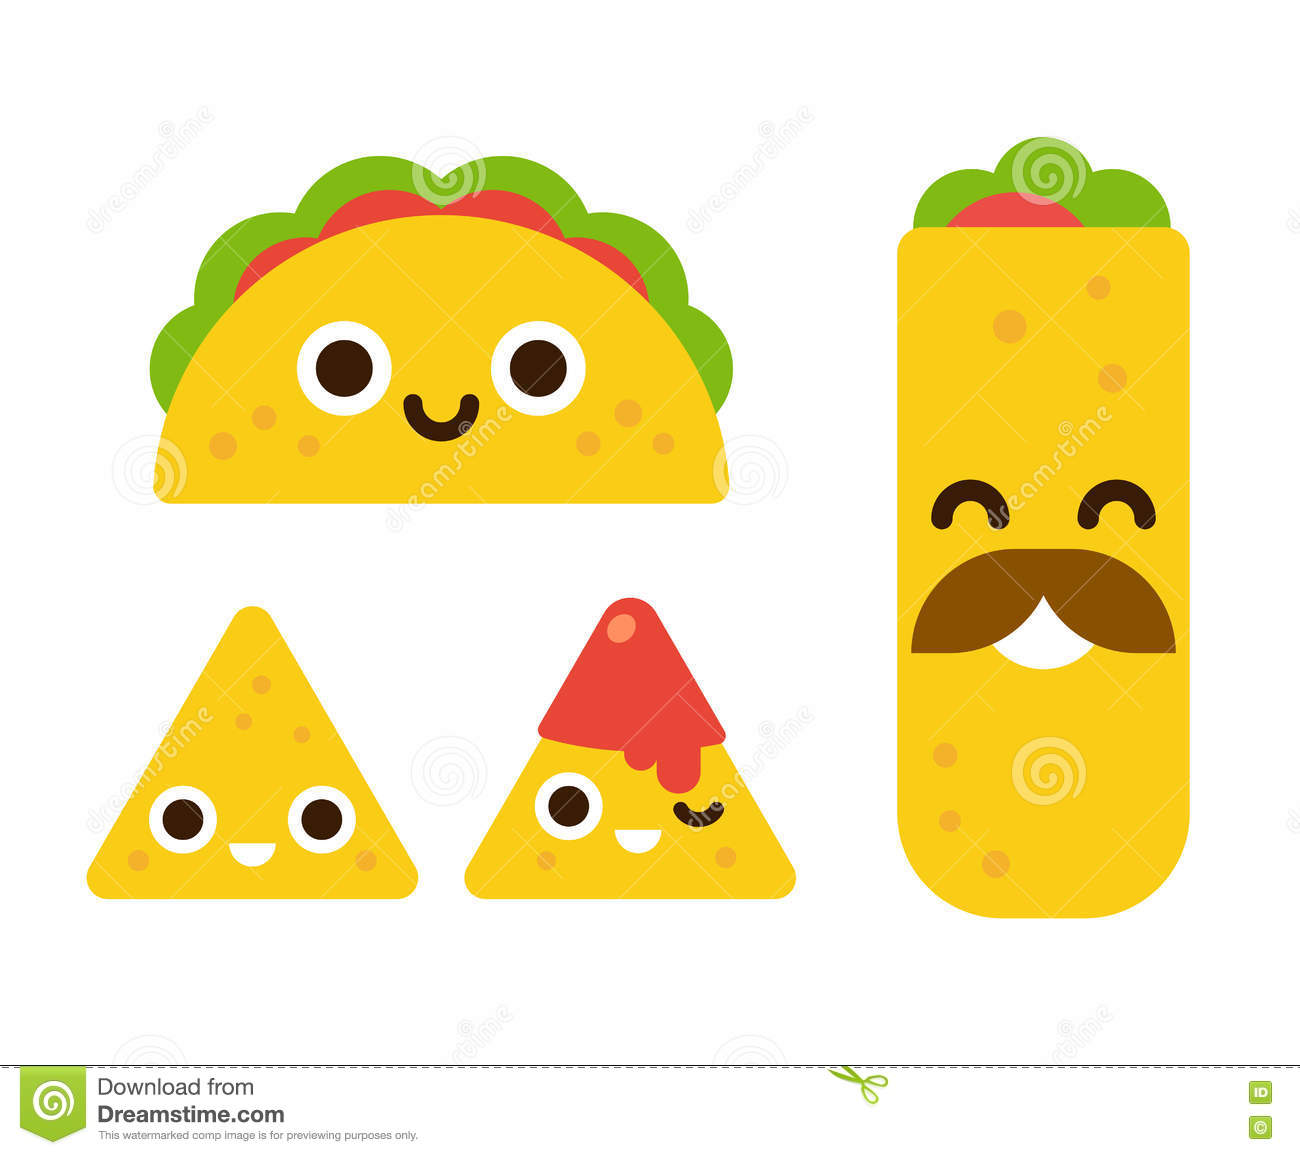 Cute mexican food stock vector. Illustration of mexican ...